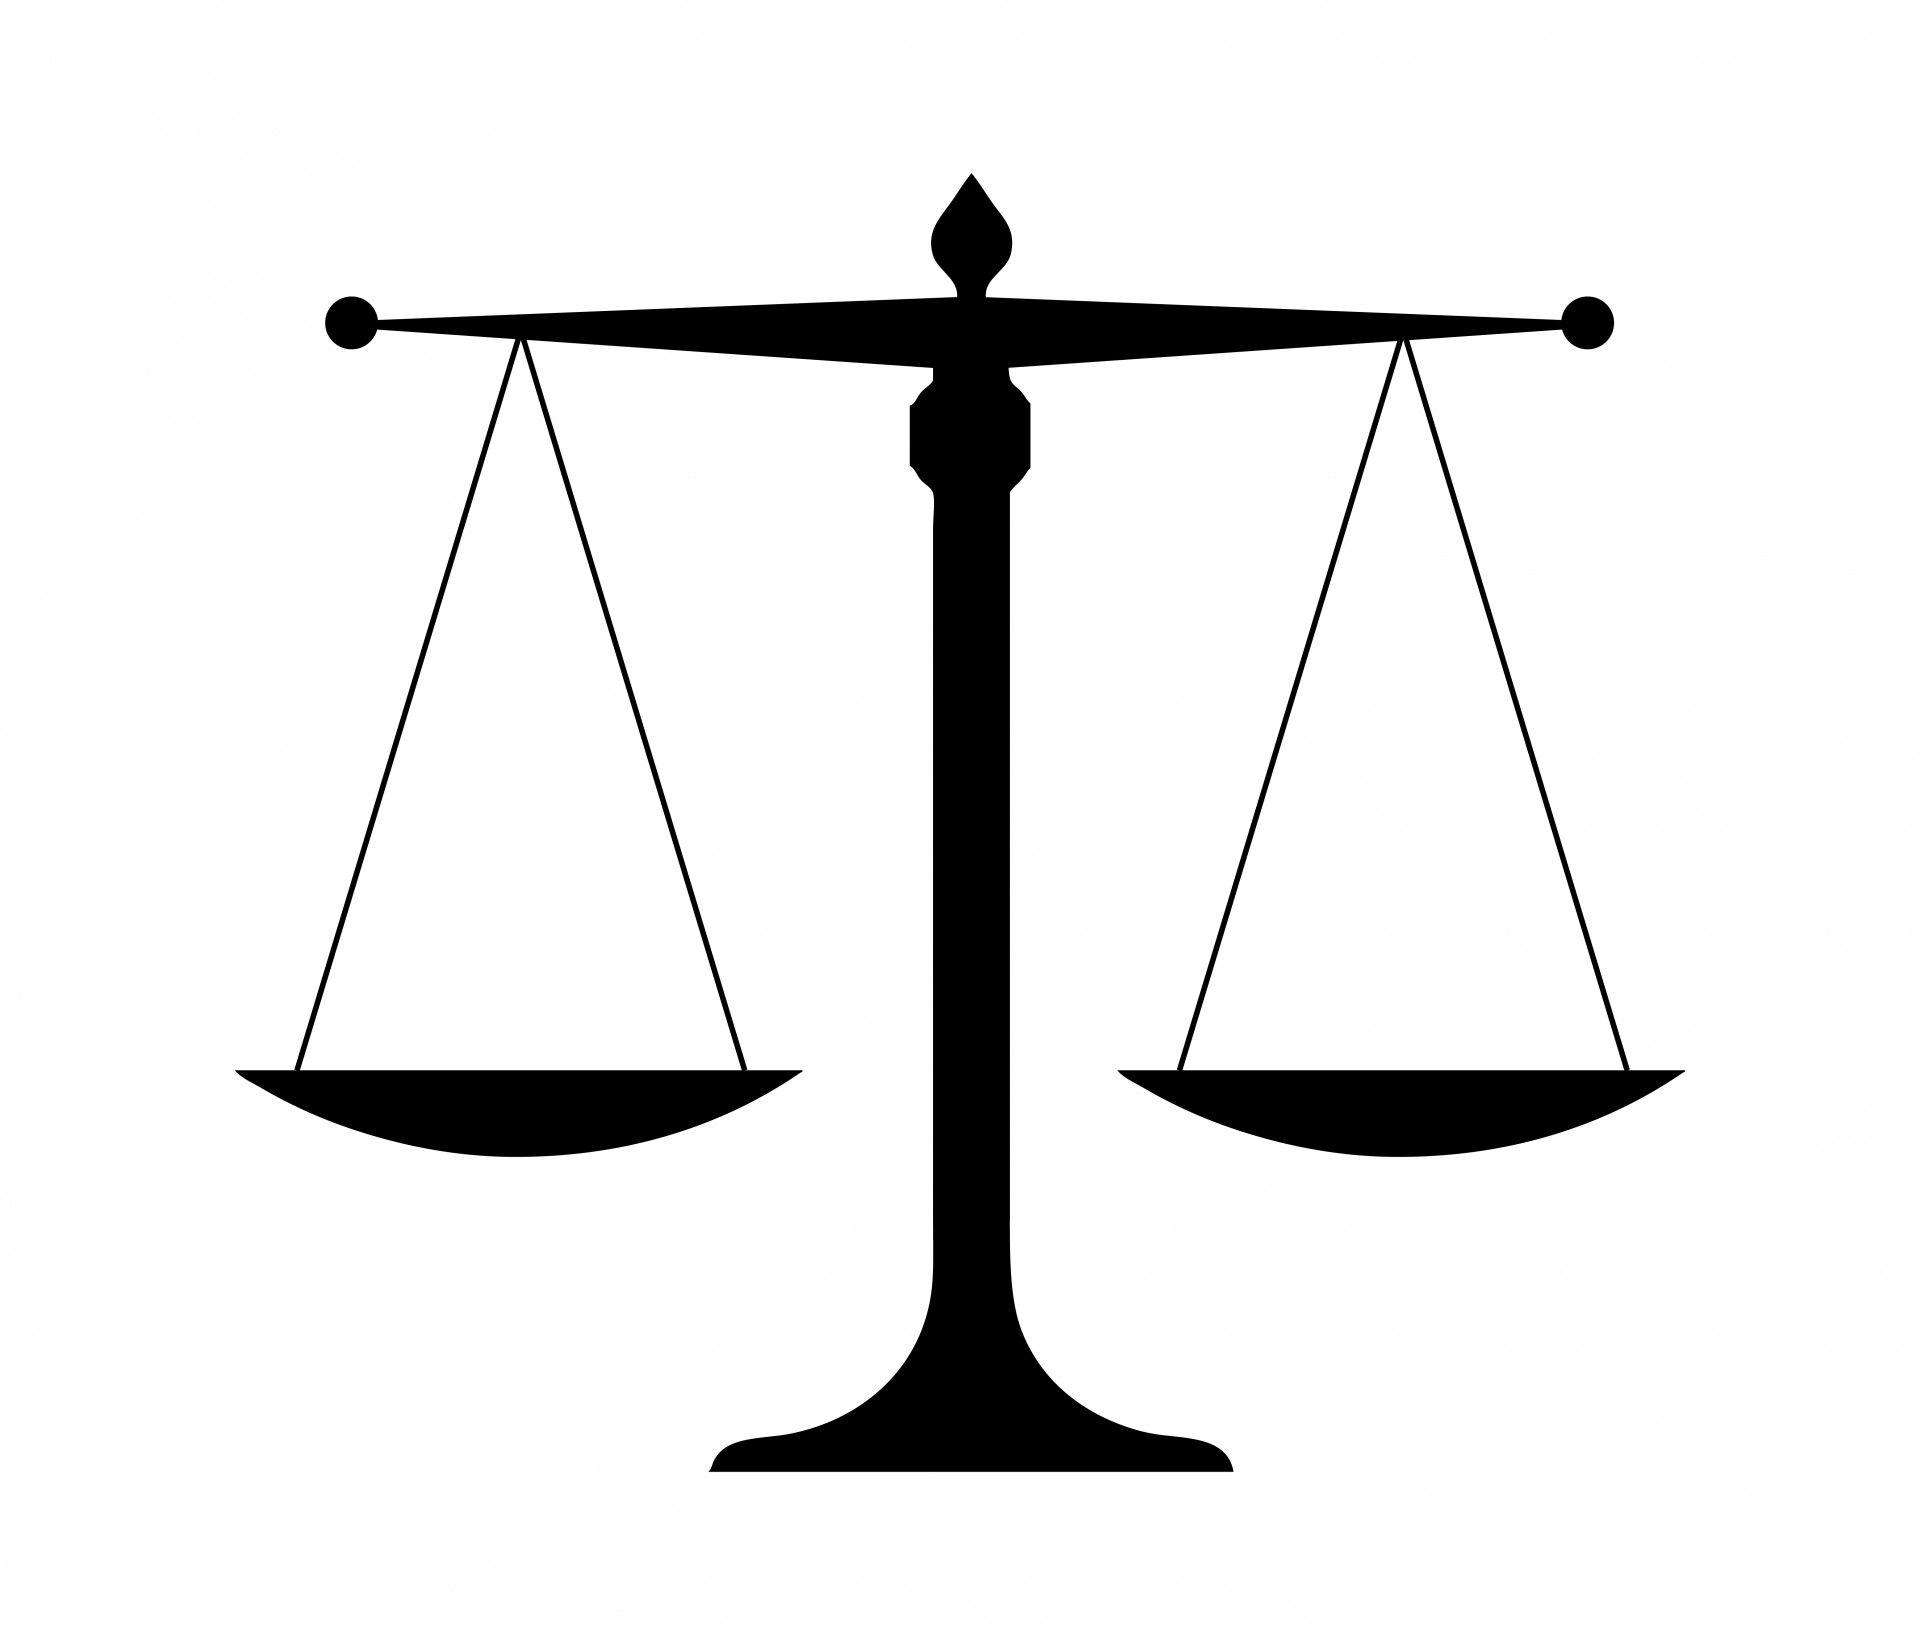 Libra clipart scales justice Of Photo Justice Justice Public